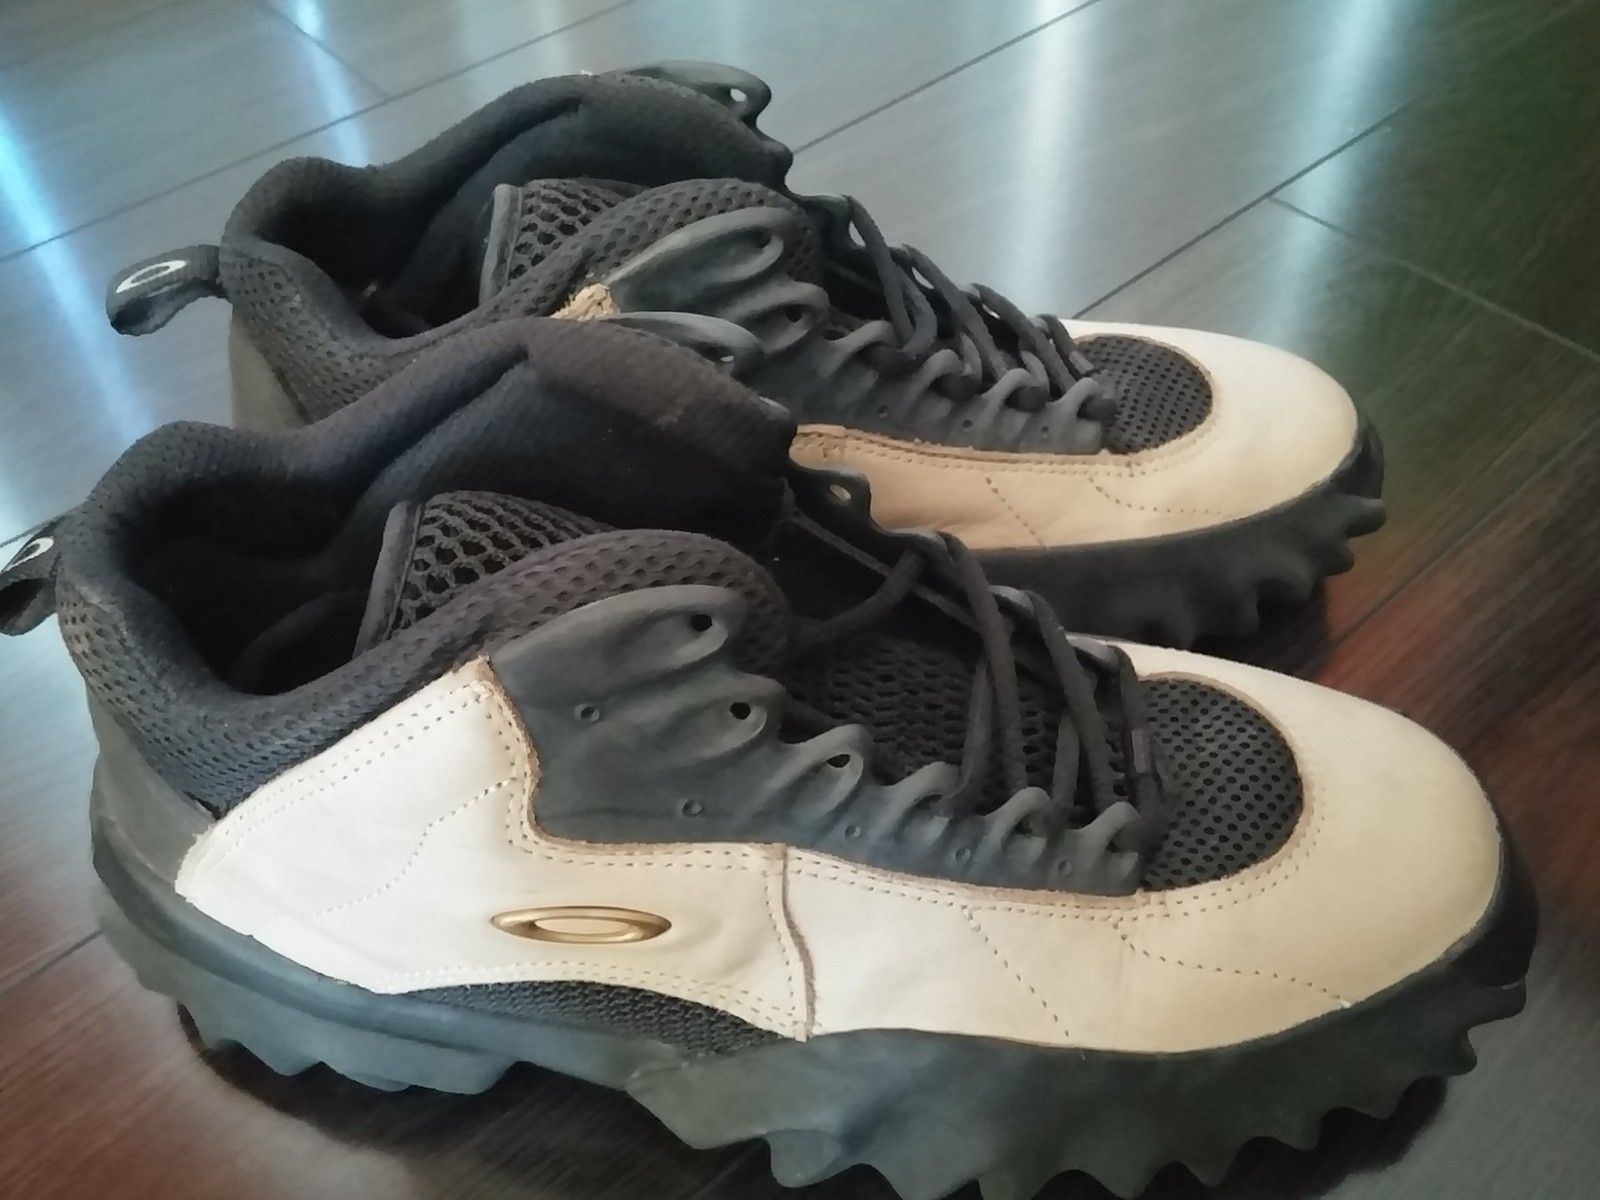 Oakley Saws and Crank Shoes 10.0 - 20150207_110224.jpg